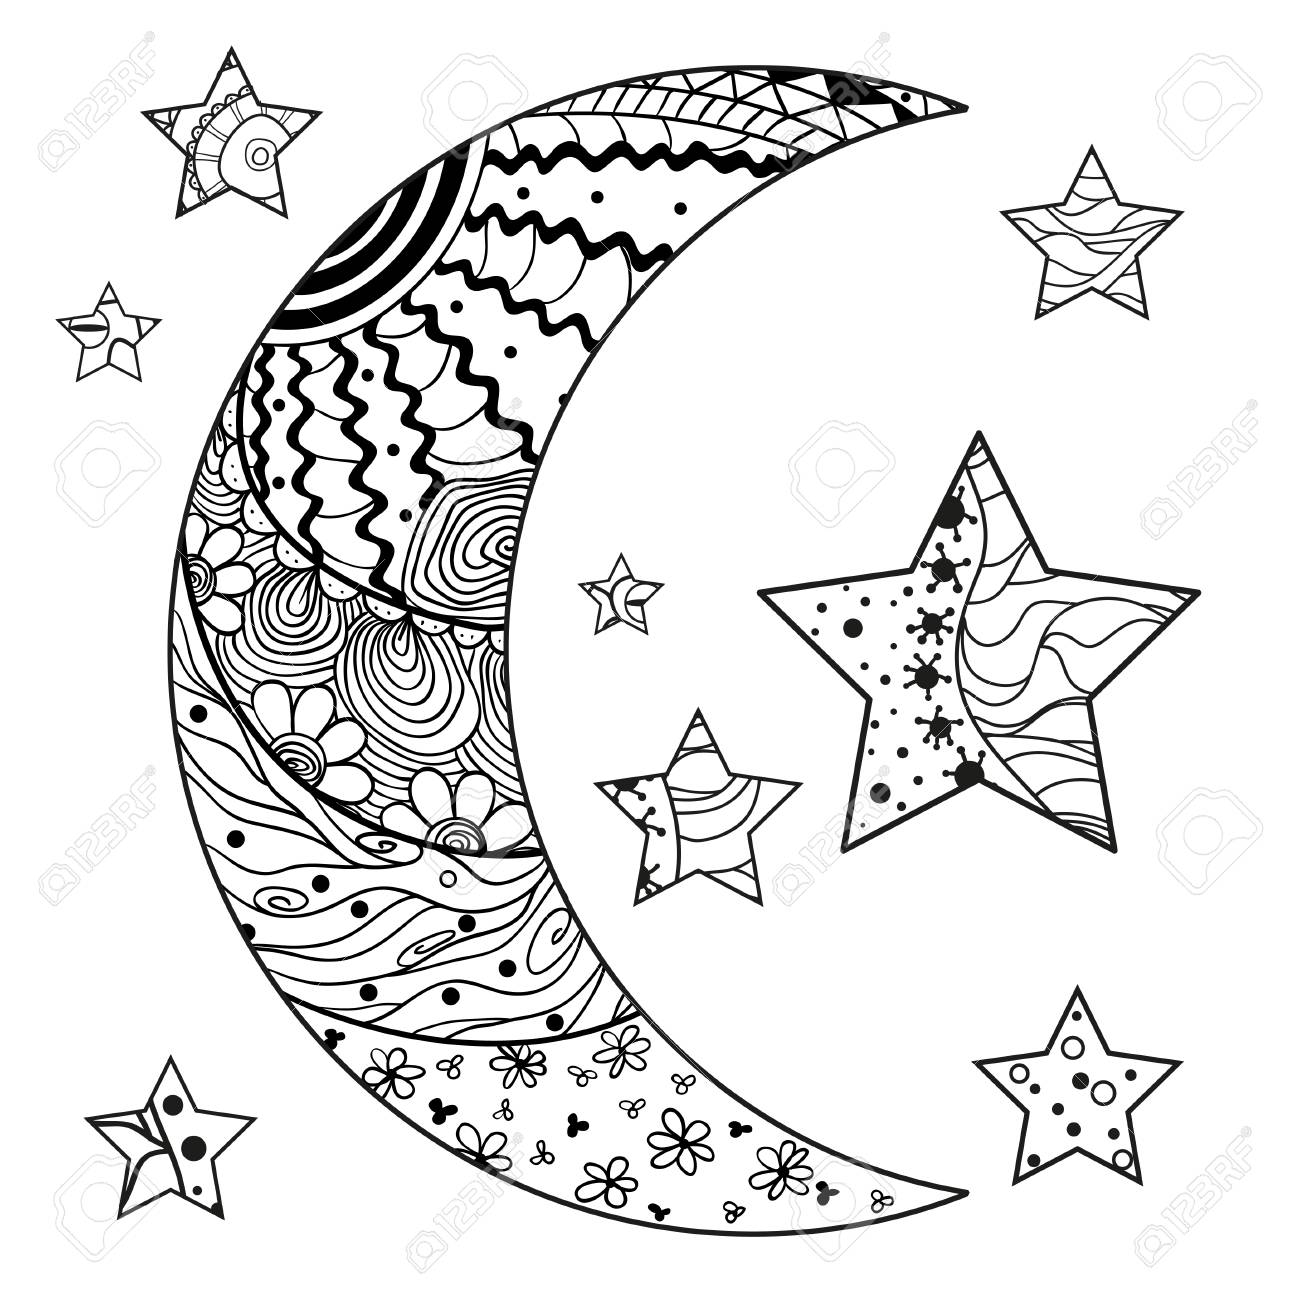 Moon And Star With Abstract Patterns On Isolation Background